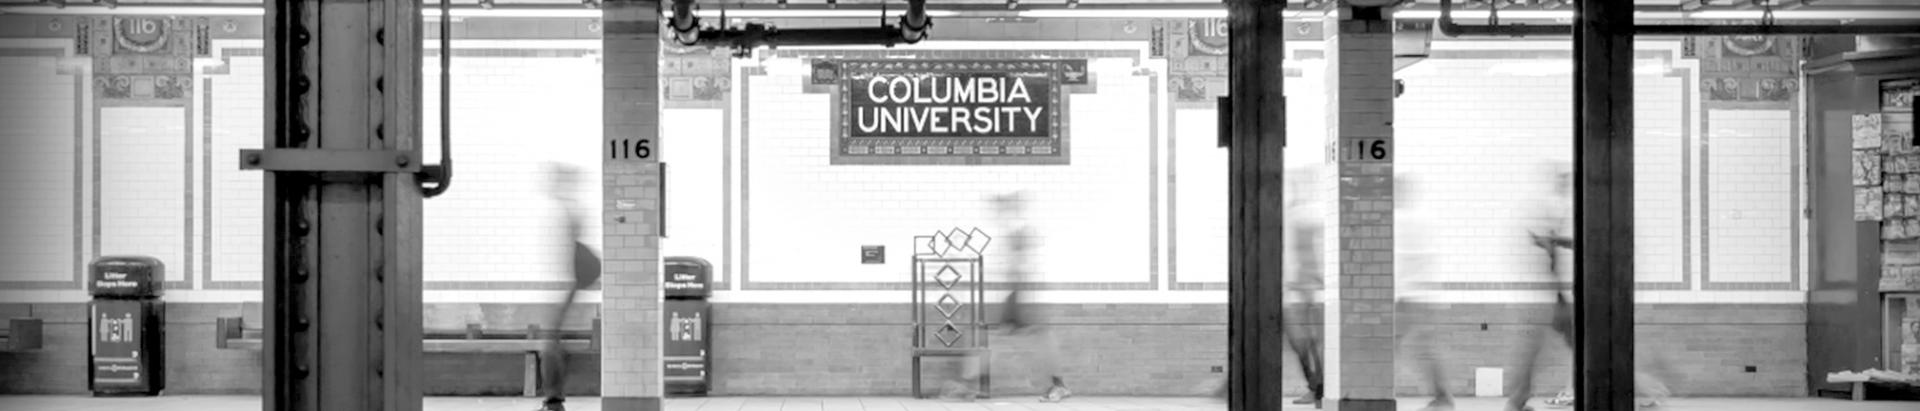 subway station at Columbia University